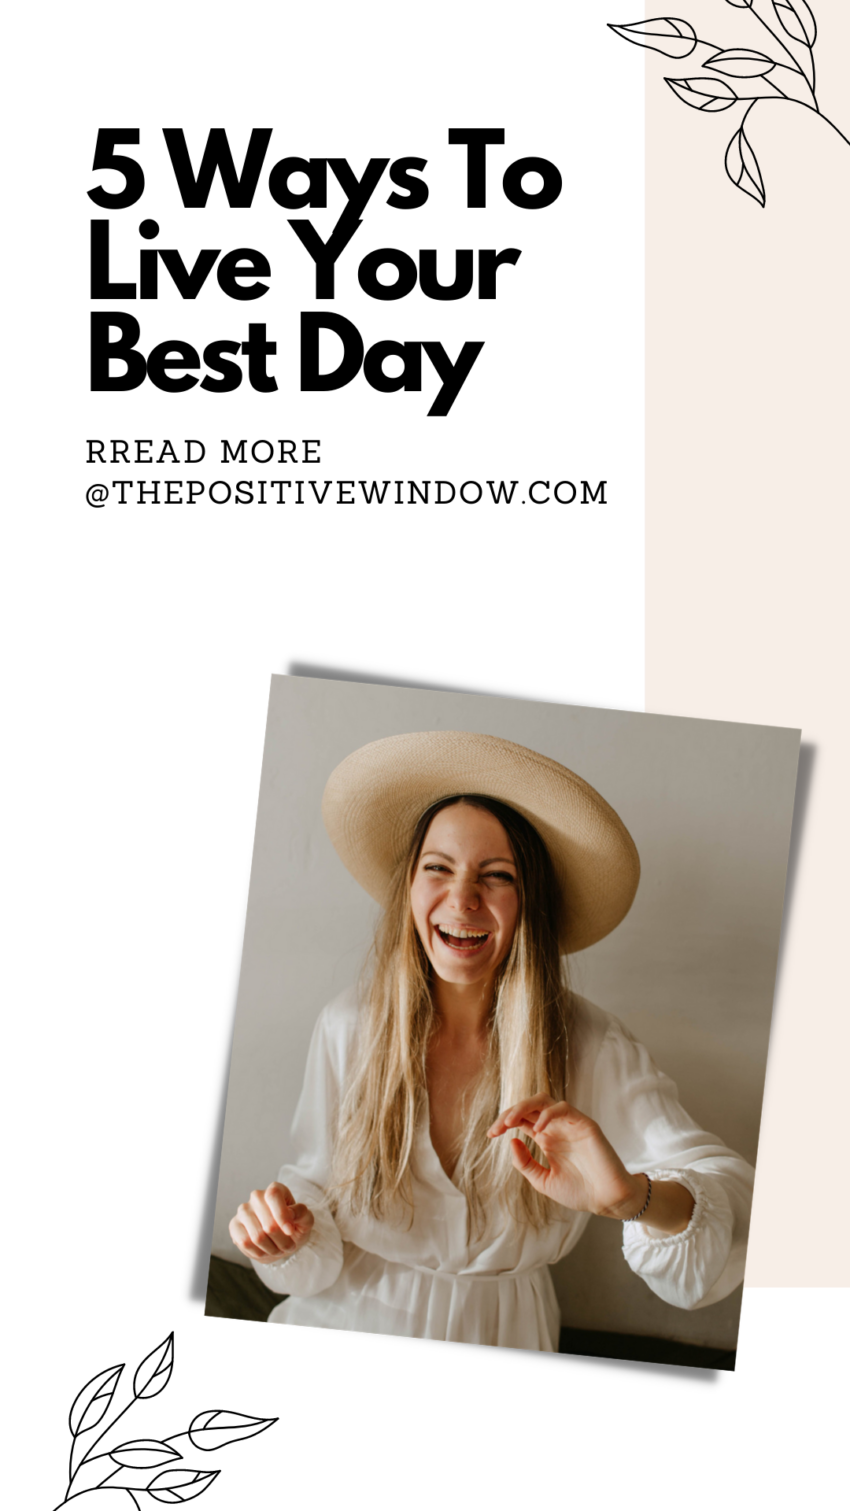 5 Ways To Live Your Best Day When Things Don't Go As Expected